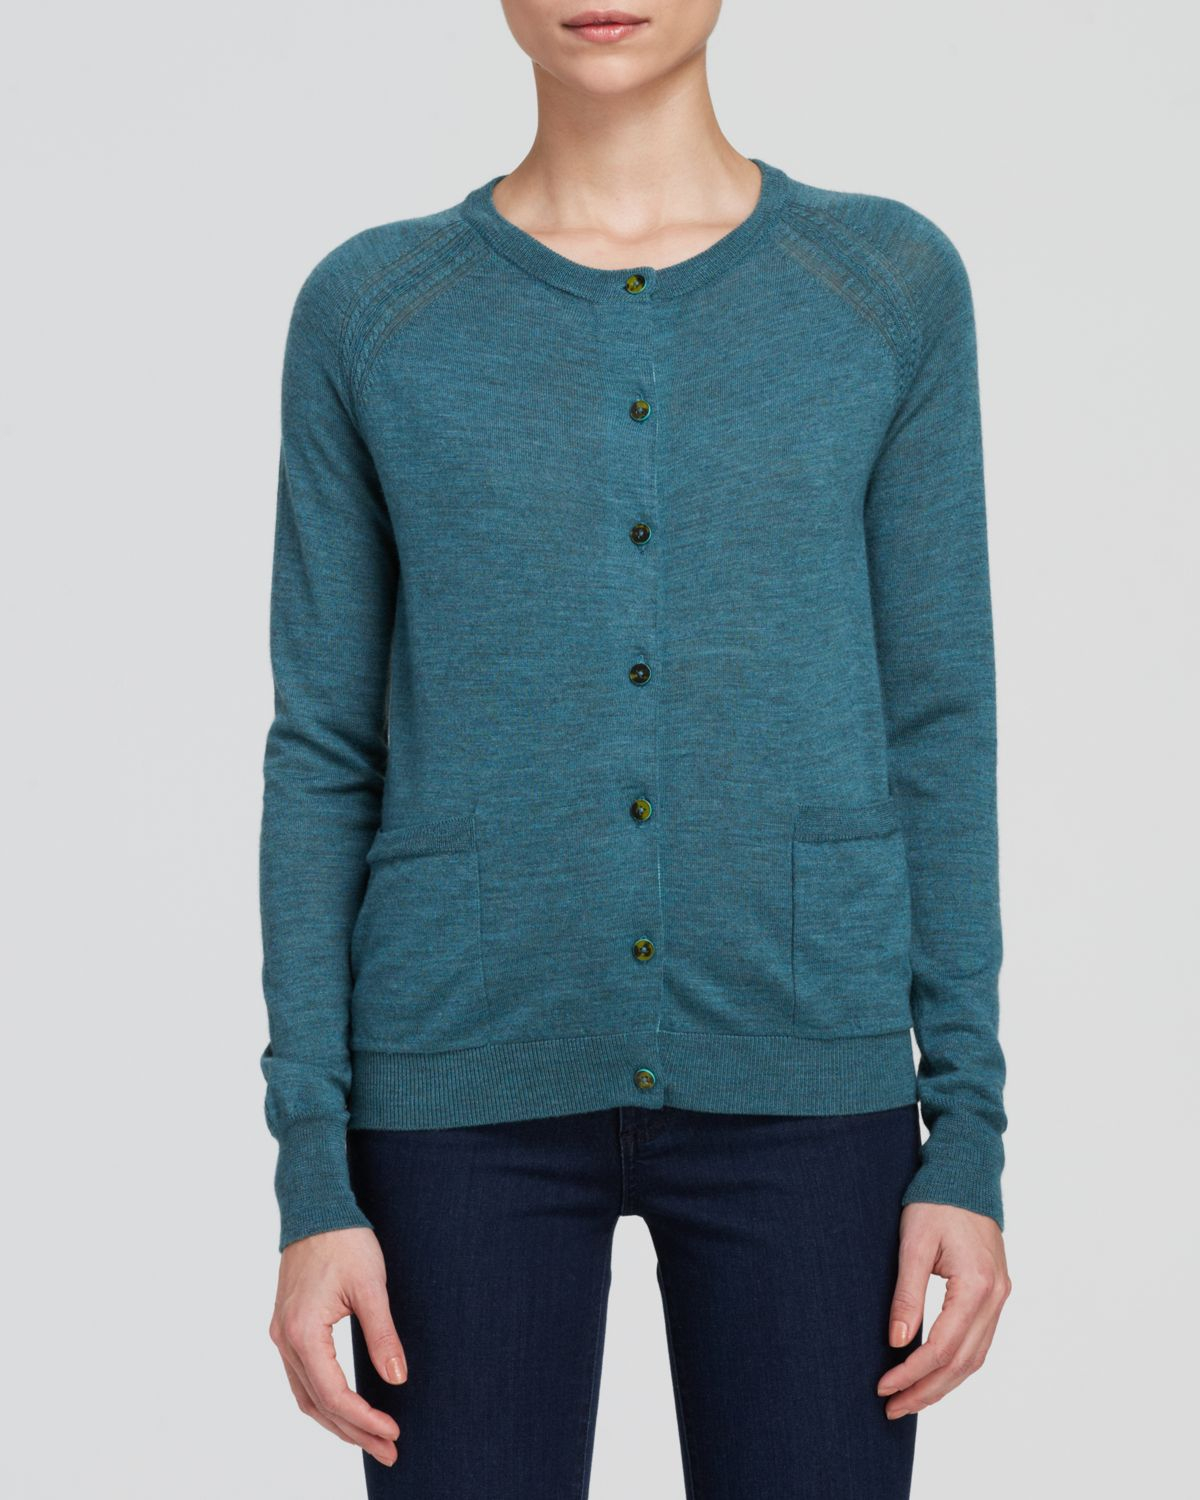 Marc by marc jacobs Cardigan - Grayson Merino Wool in Green | Lyst